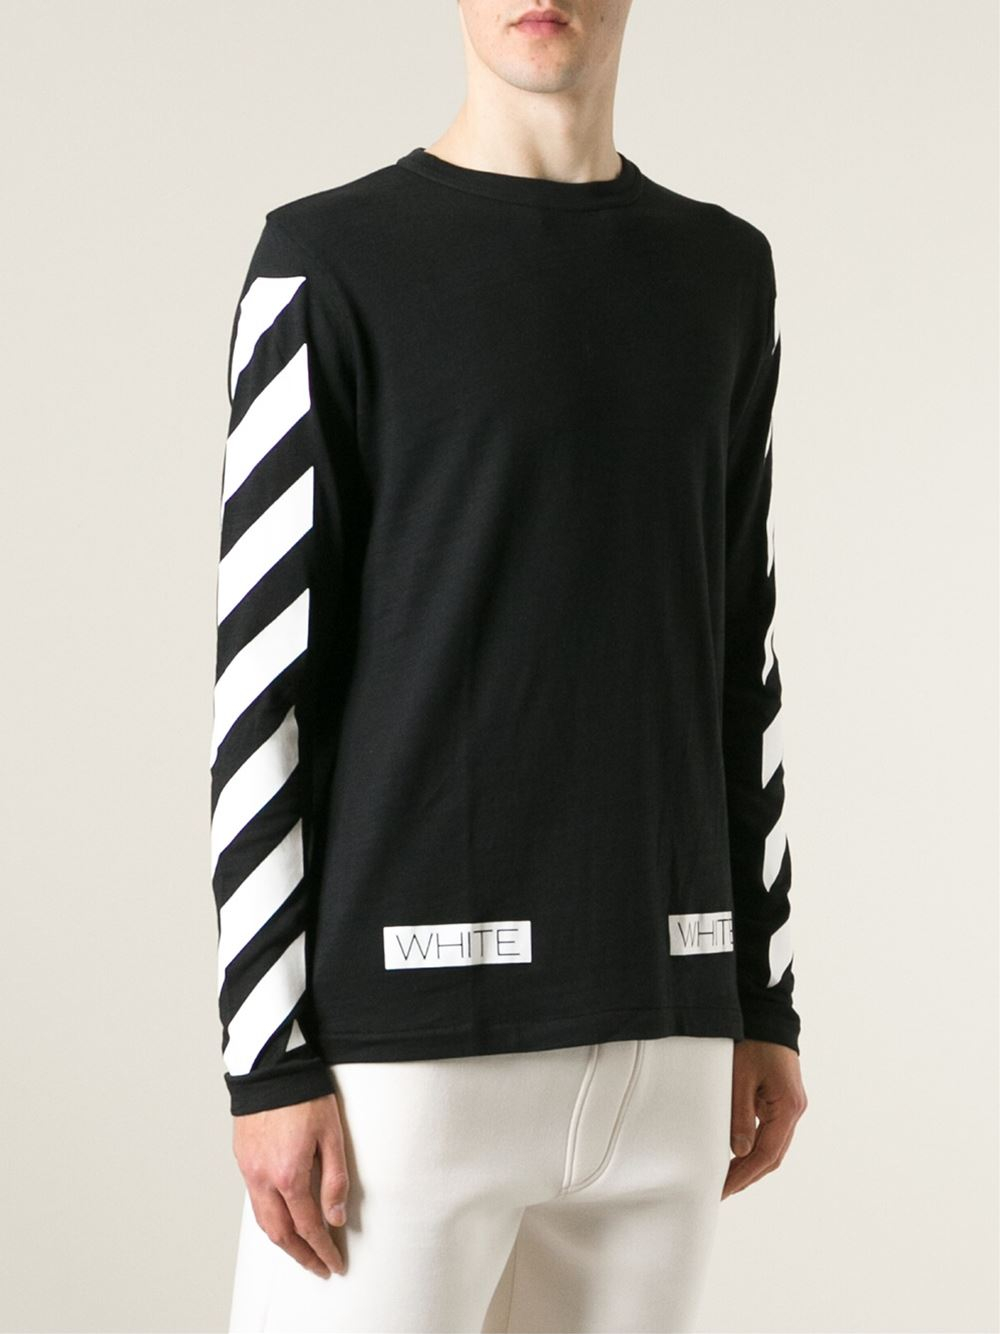 Off-white c/o virgil abloh Striped Sweater in Black for Men | Lyst